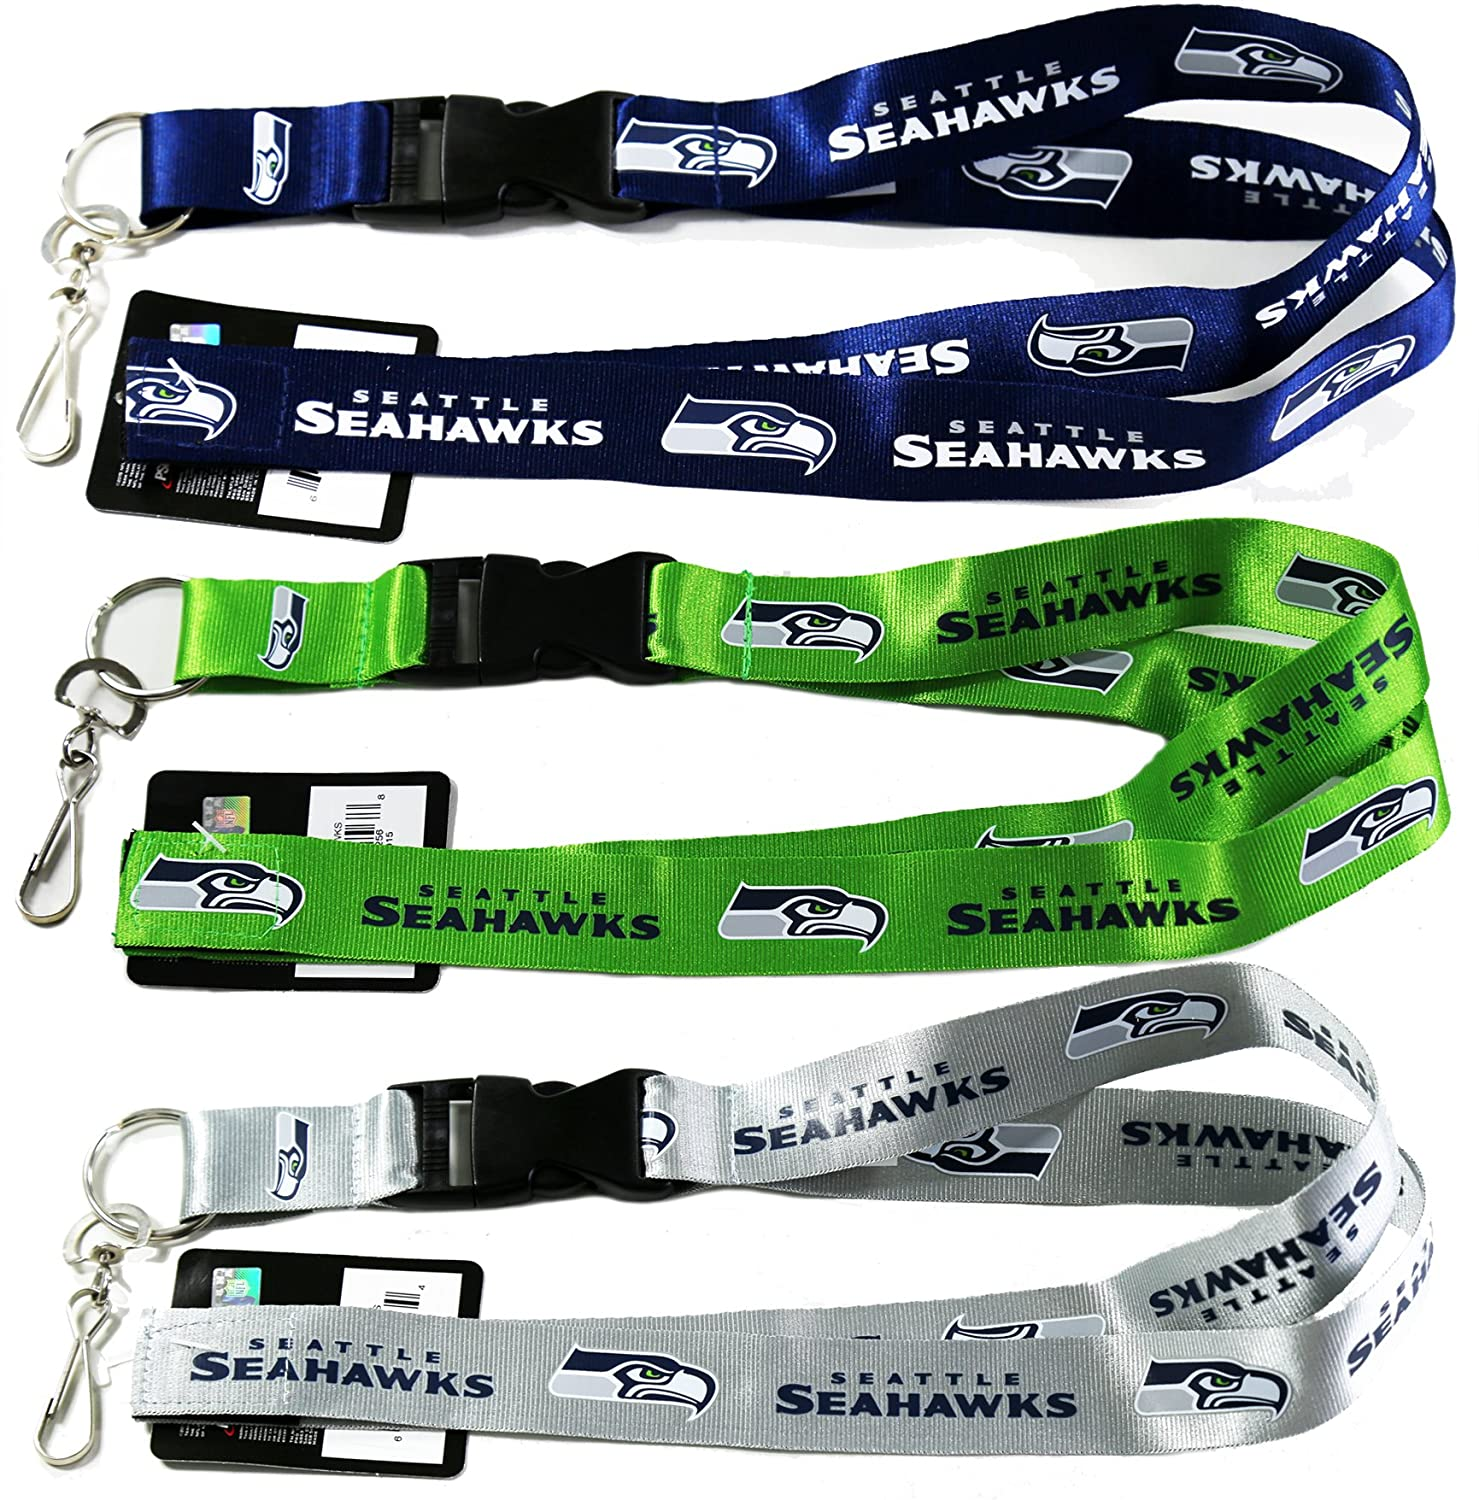 Amazon.com: NFL Seattle Seahawks Cordón, 1 verde, 1 Plata, 1 ...